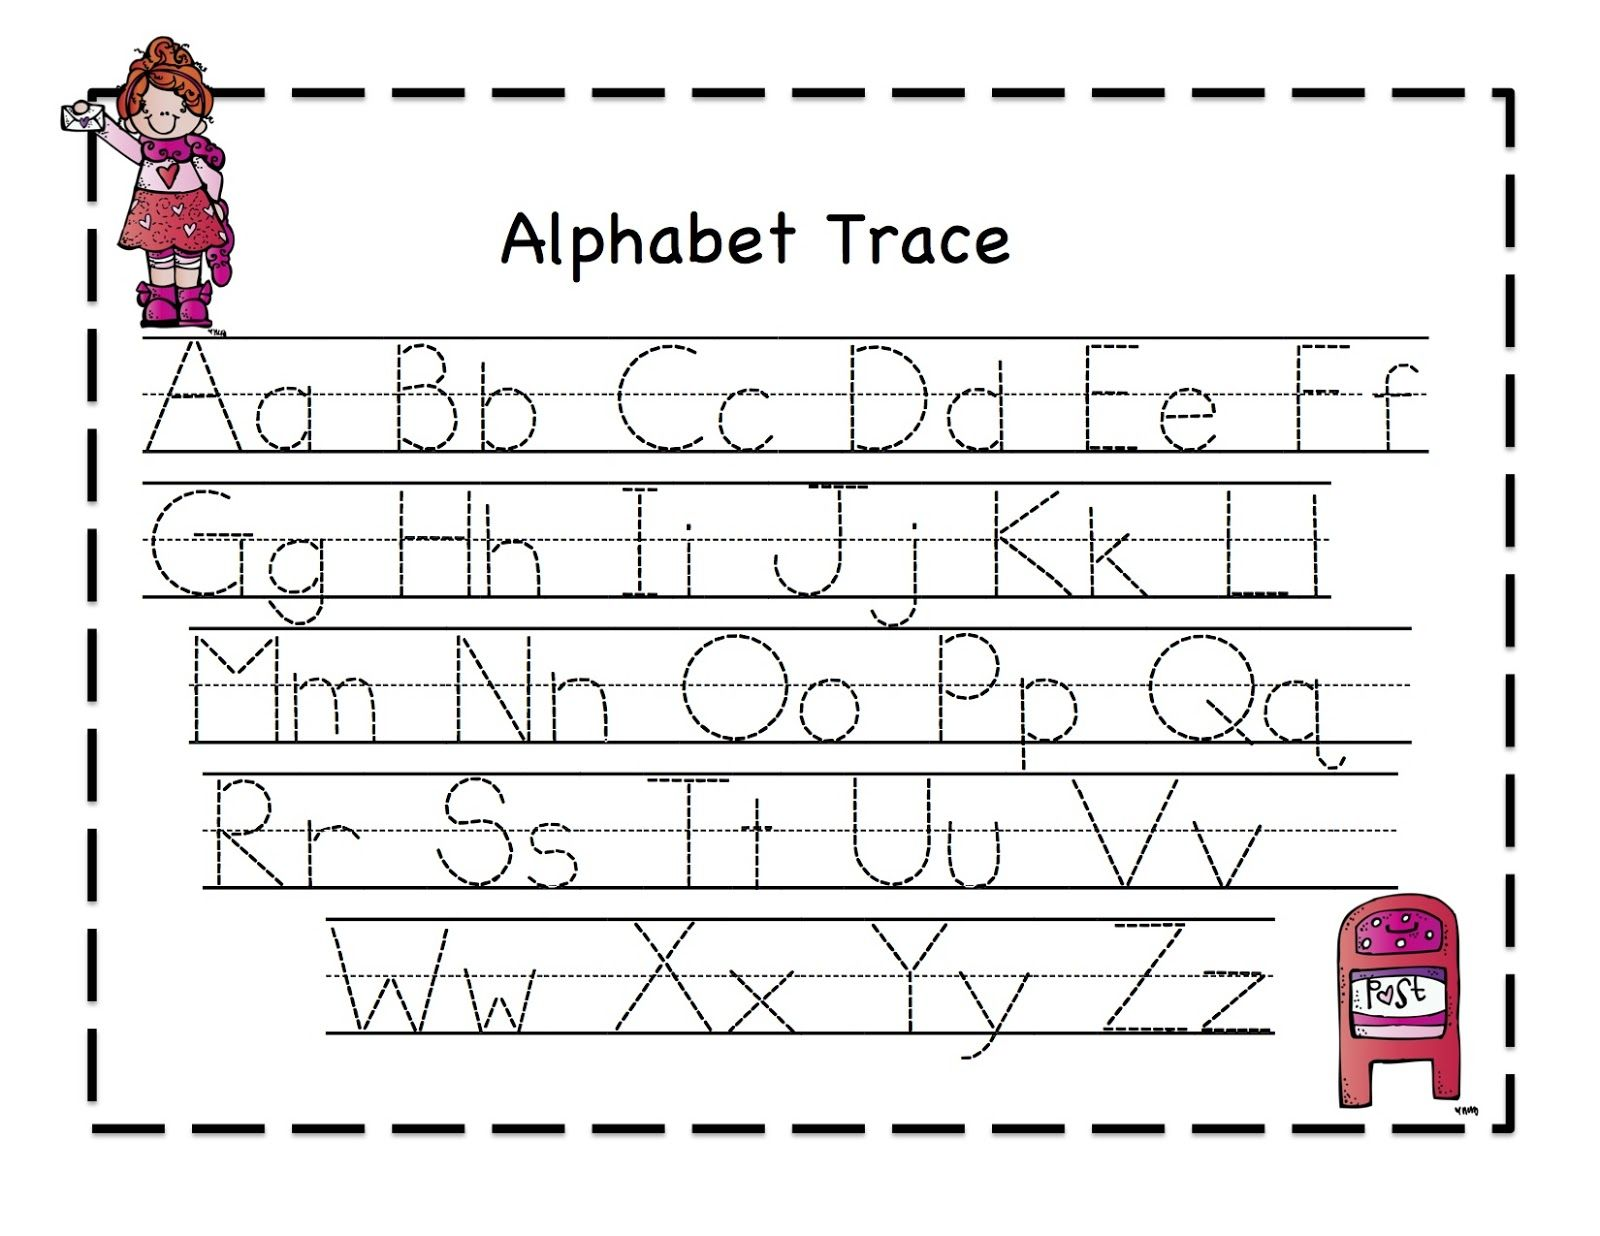 Worksheets Abc Worksheet For Preschool abc tracing sheets for preschool kids kiddo shelter alphabet shelter